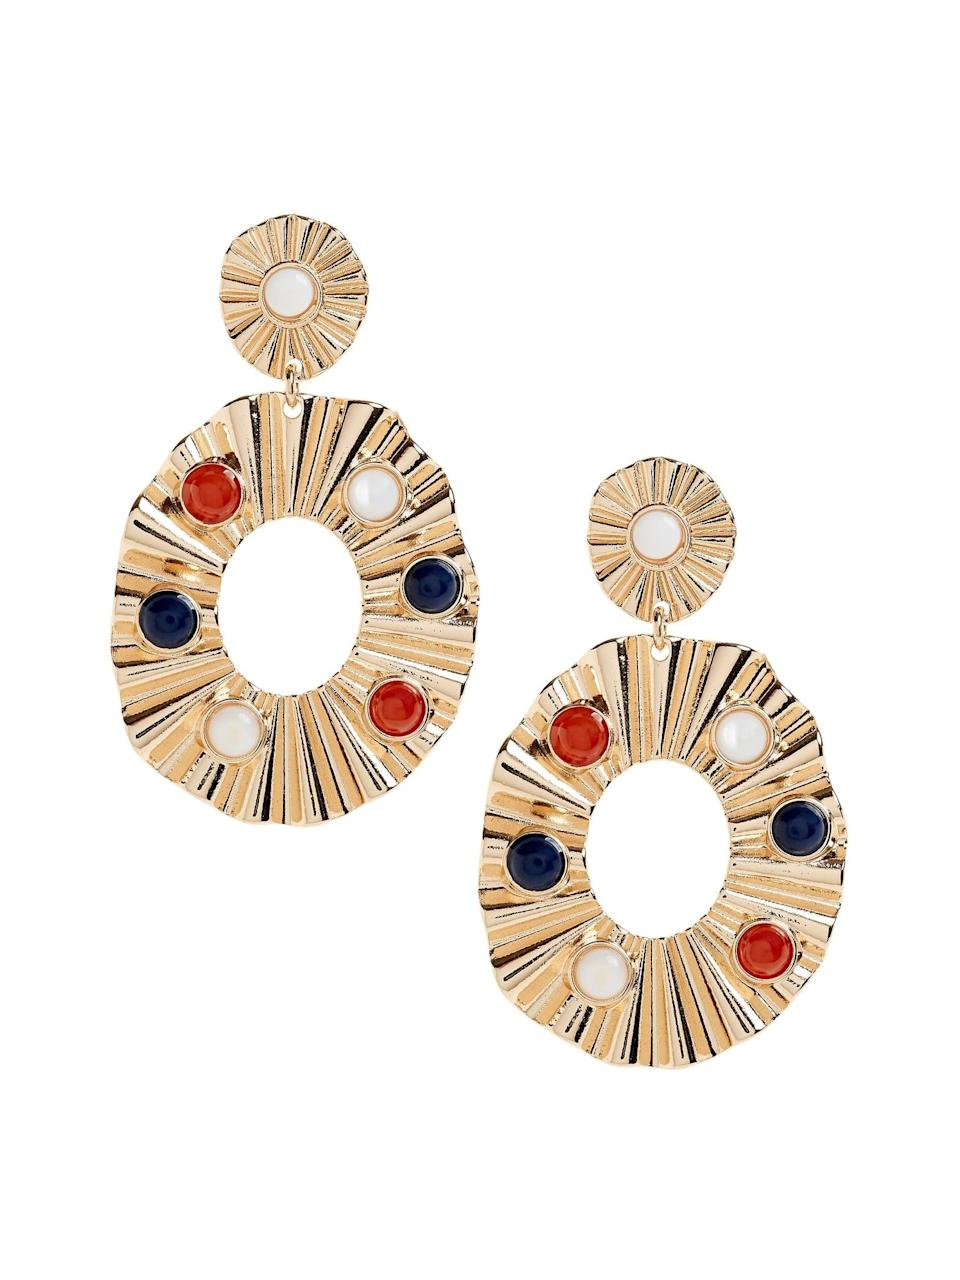 <p>Pair these <span>Banana Republic Crinkle Oval Earrings</span> ($58) with a black turtleneck and red lipstick for an 80s power dressing vibe!</p>